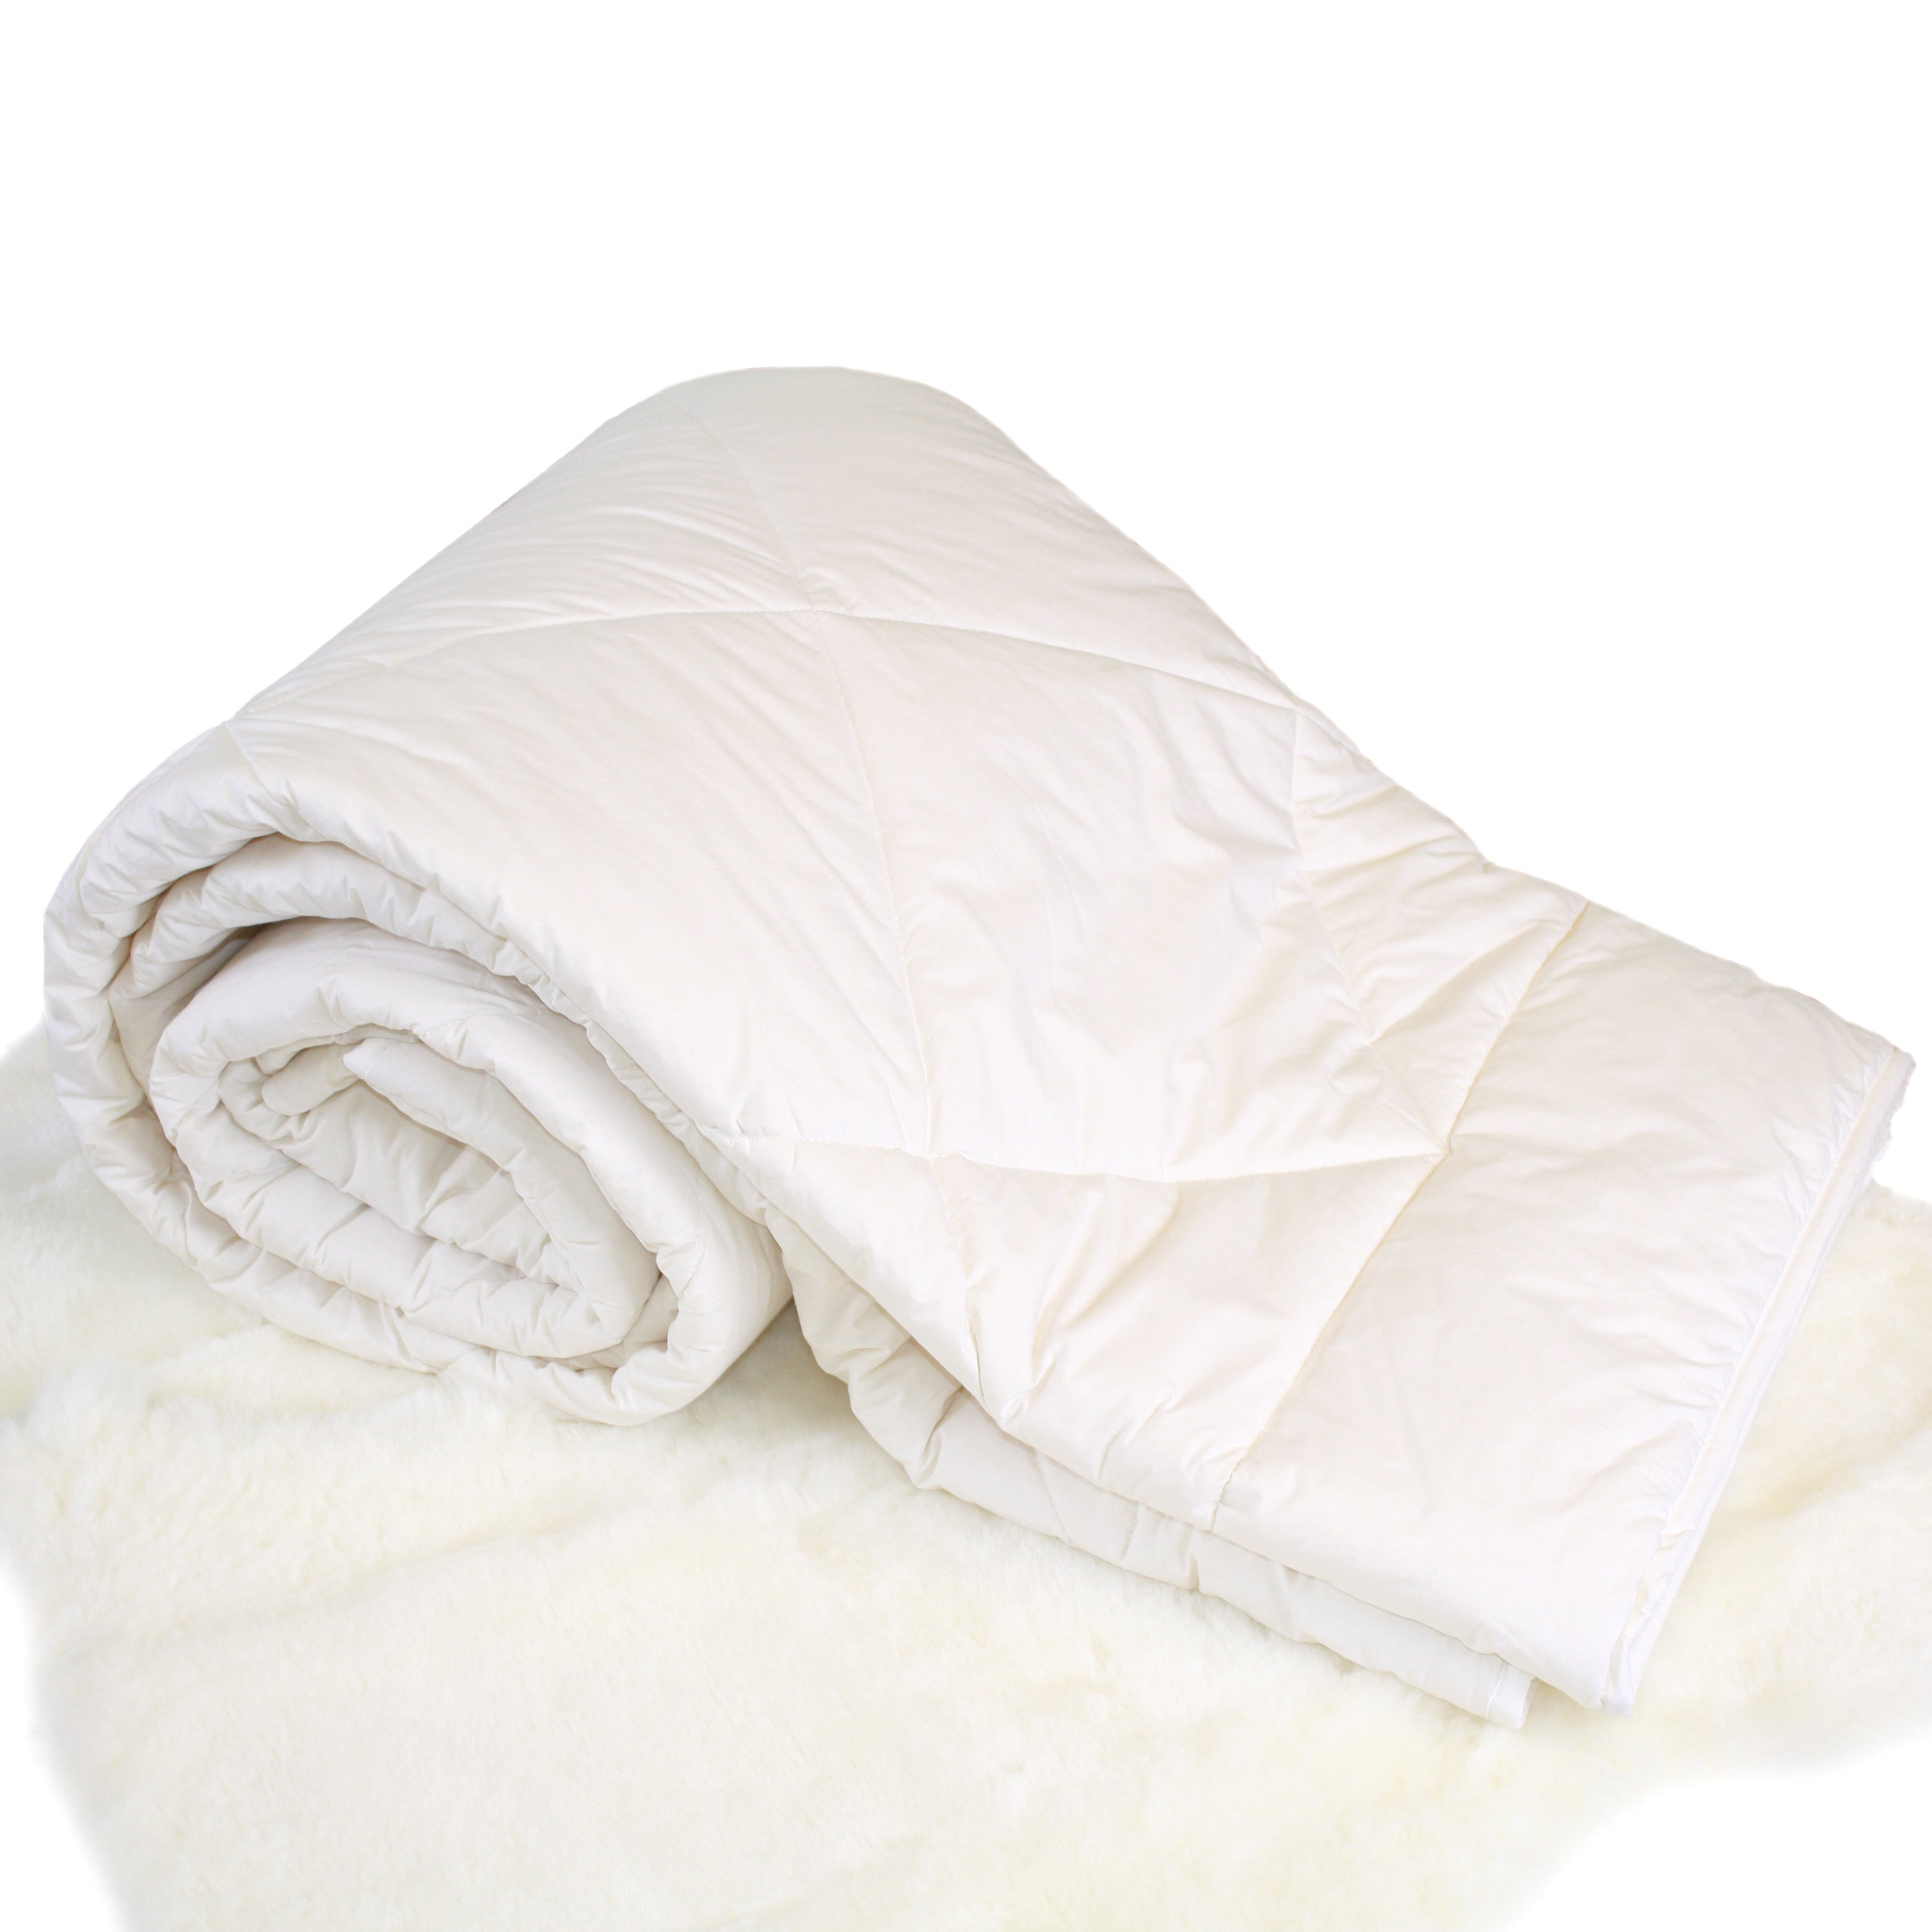 Strong-Willed Baby Super Soft Swaddle Blanket With Comforter Outfits & Sets